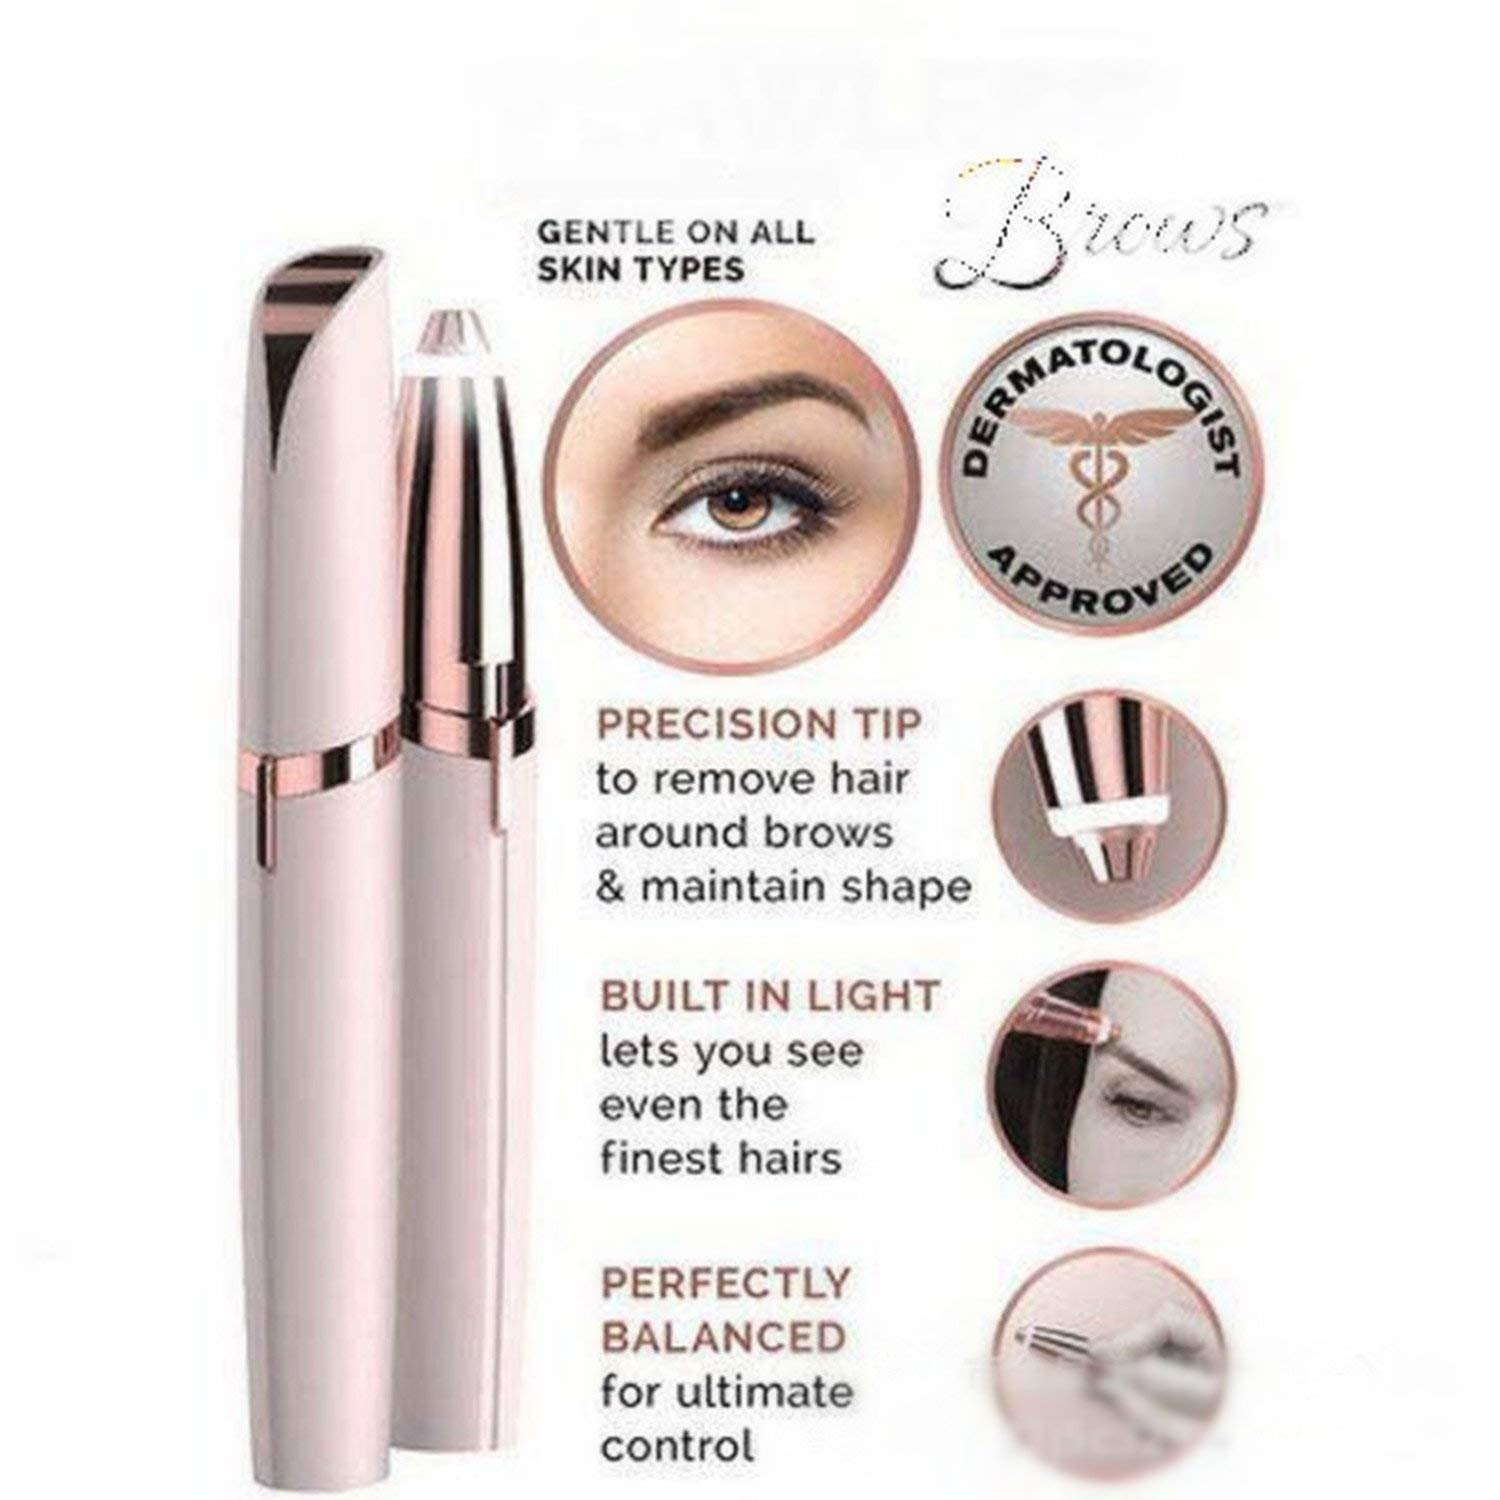 Yaogroo As Seen On Tv Brows The Best Eyebrow Hair Removal New